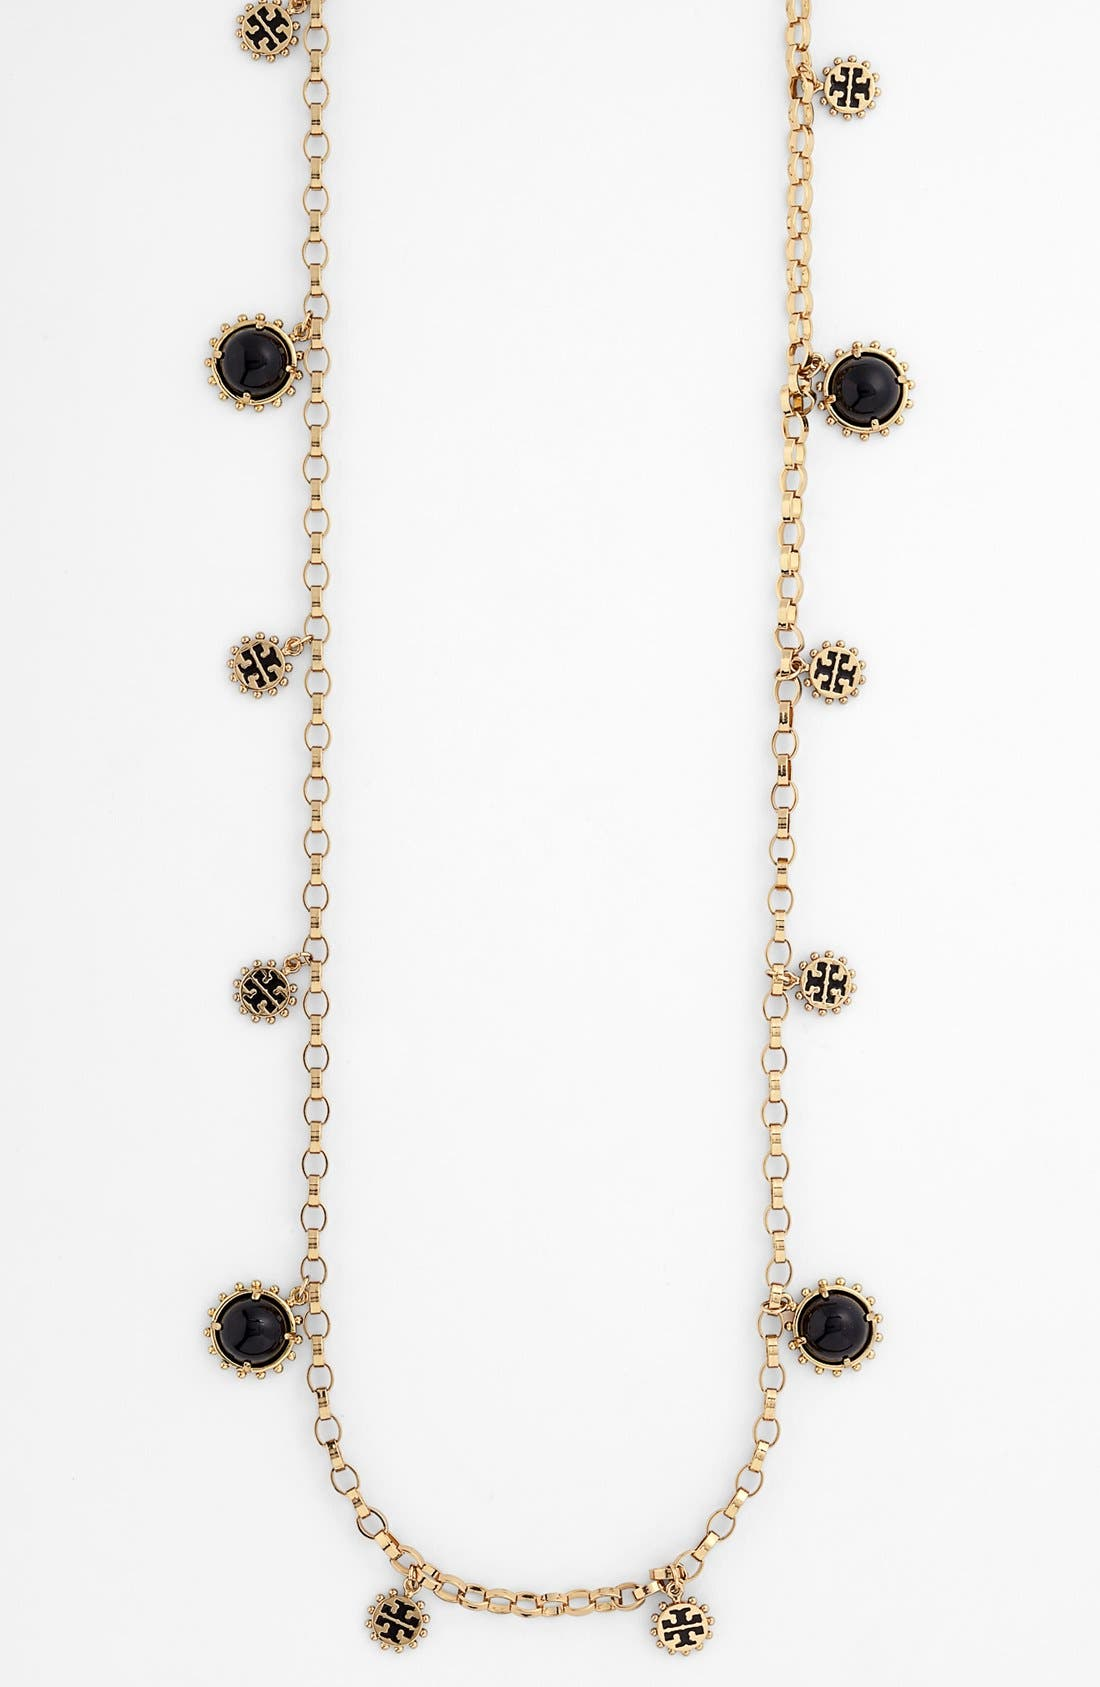 Main Image - Tory Burch 'Winslow' Long Link Necklace